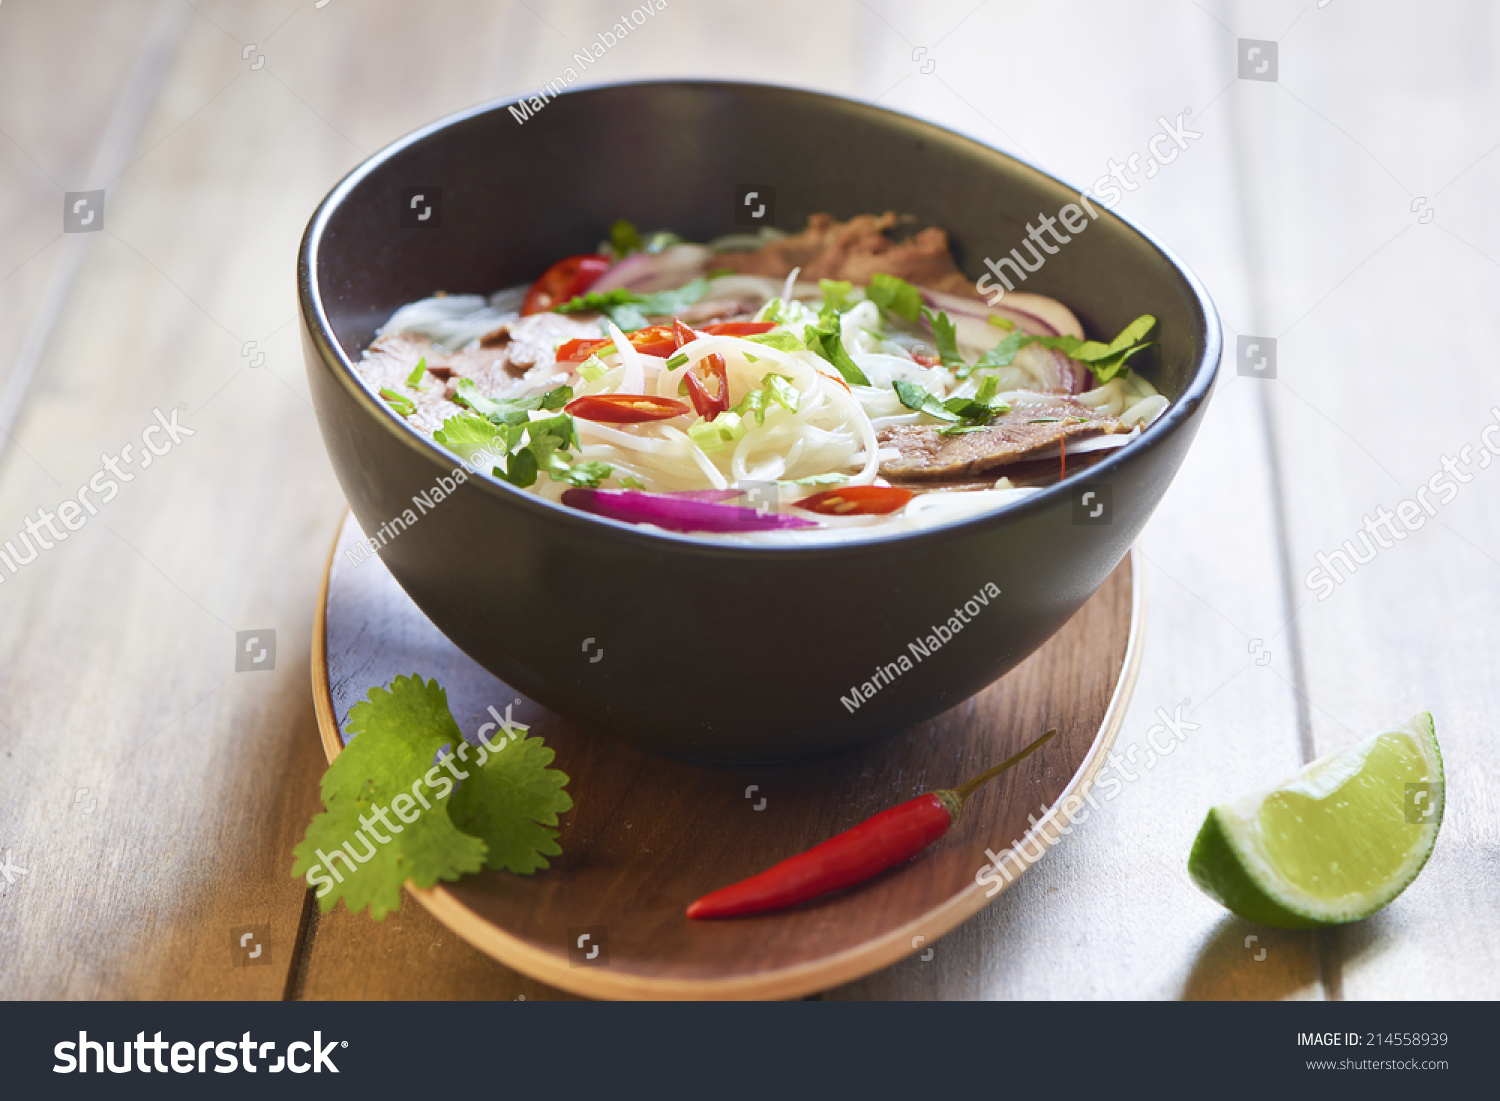 Pho Bo, Vietnamese Food, Rice Noodle Soup With Sliced Beef Stock Photo ...